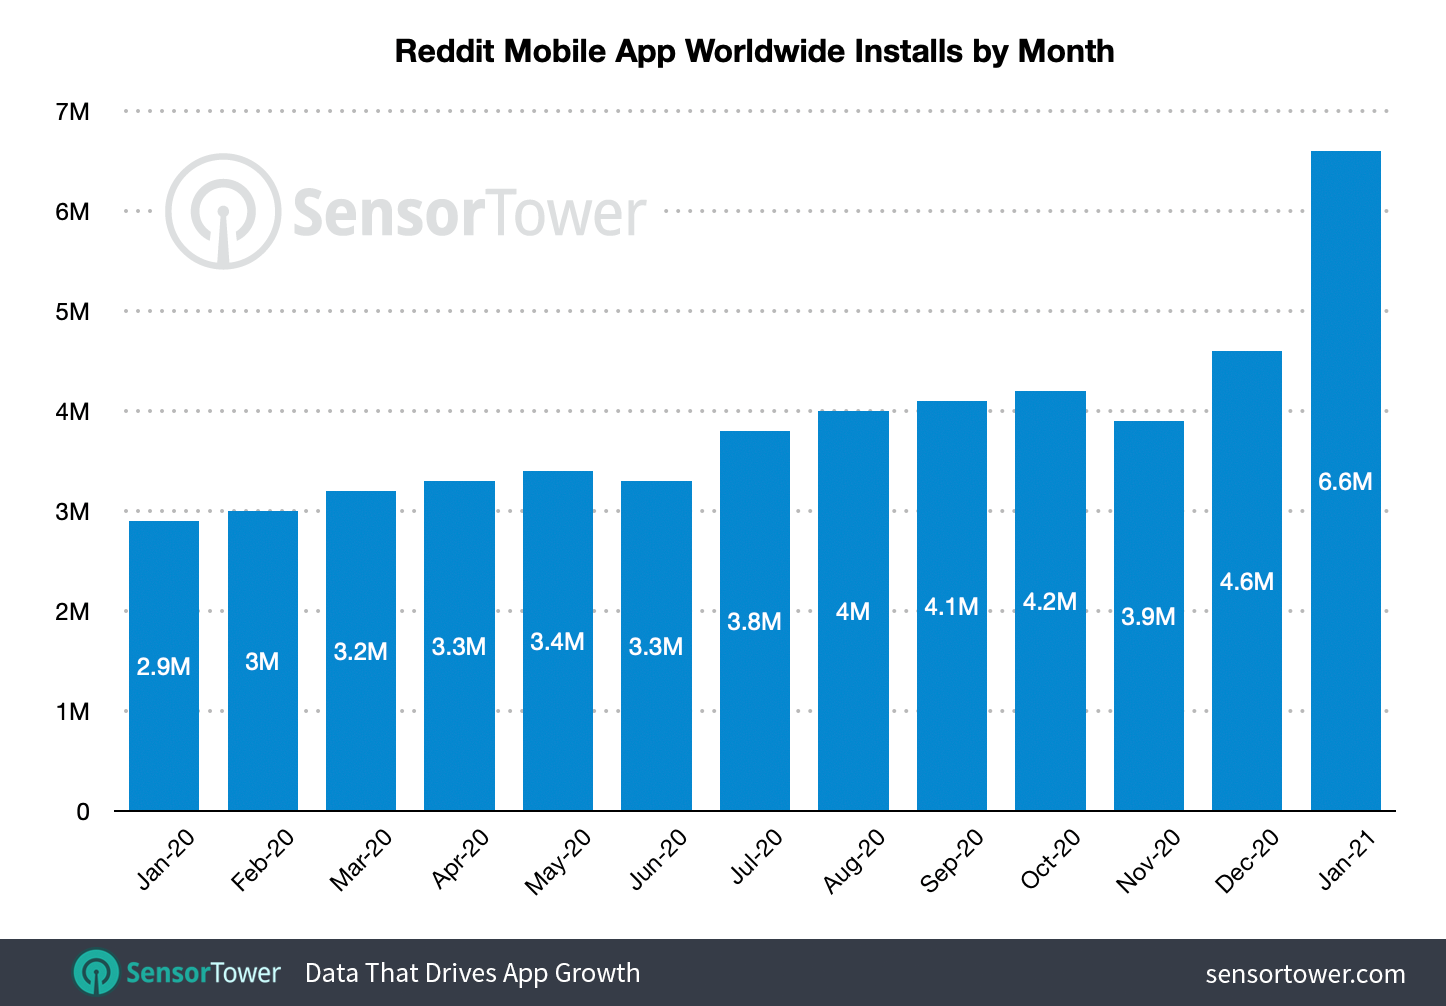 Reddit Just Saw Record Breaking Installs in a Single Month